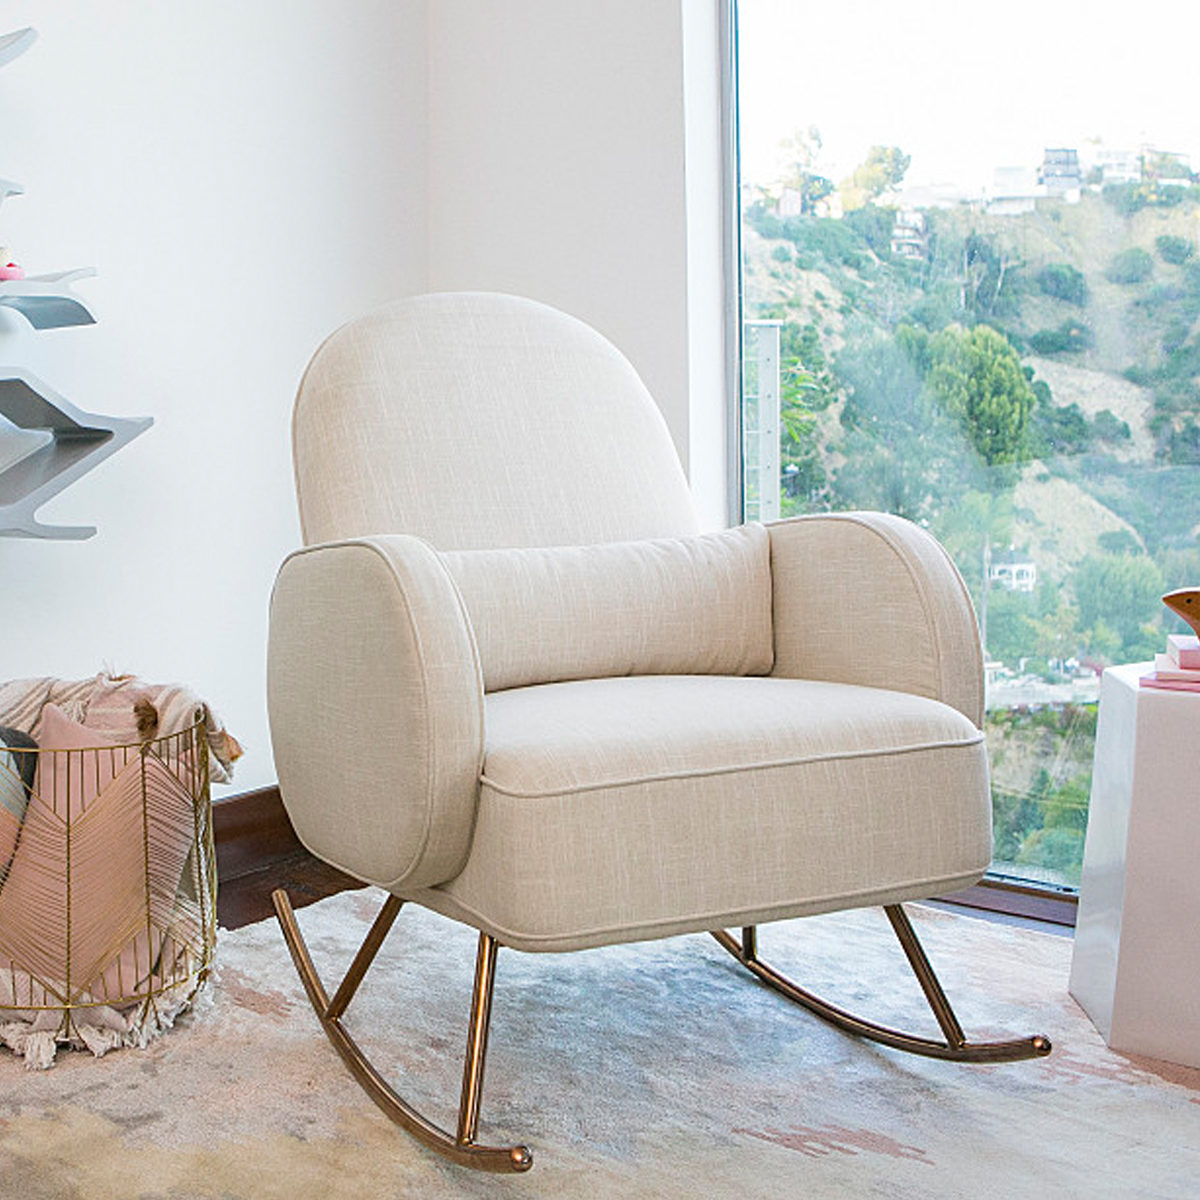 Nursery Works Compass Rocker Oatmeal